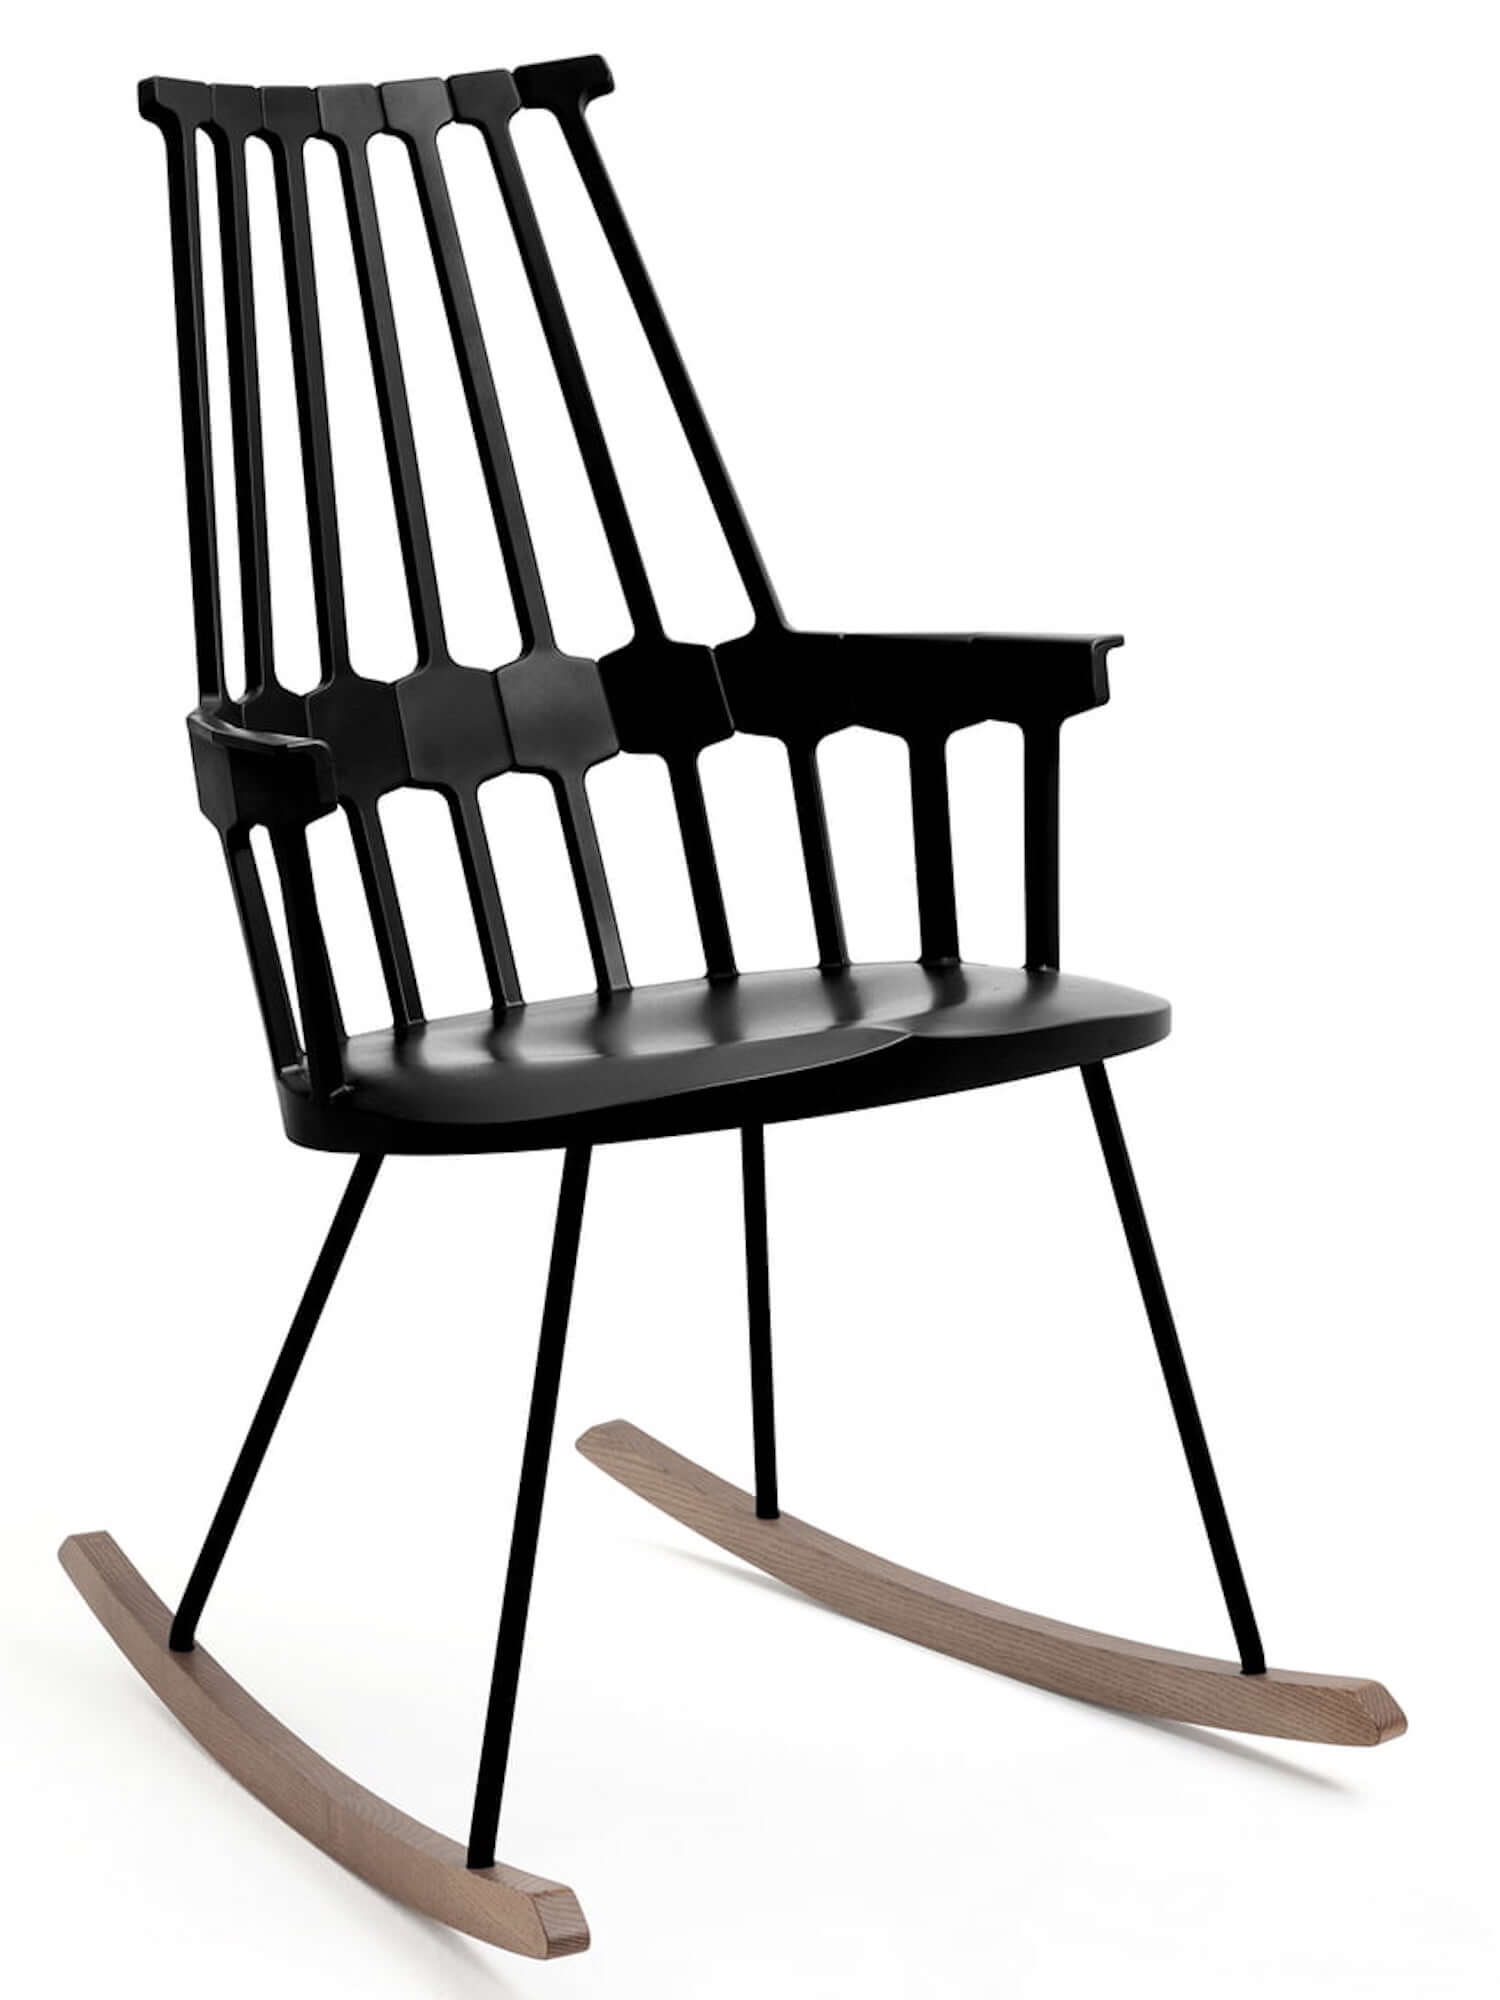 est living the est edit rocking chairs comback rocking chair kartell space furniture 2